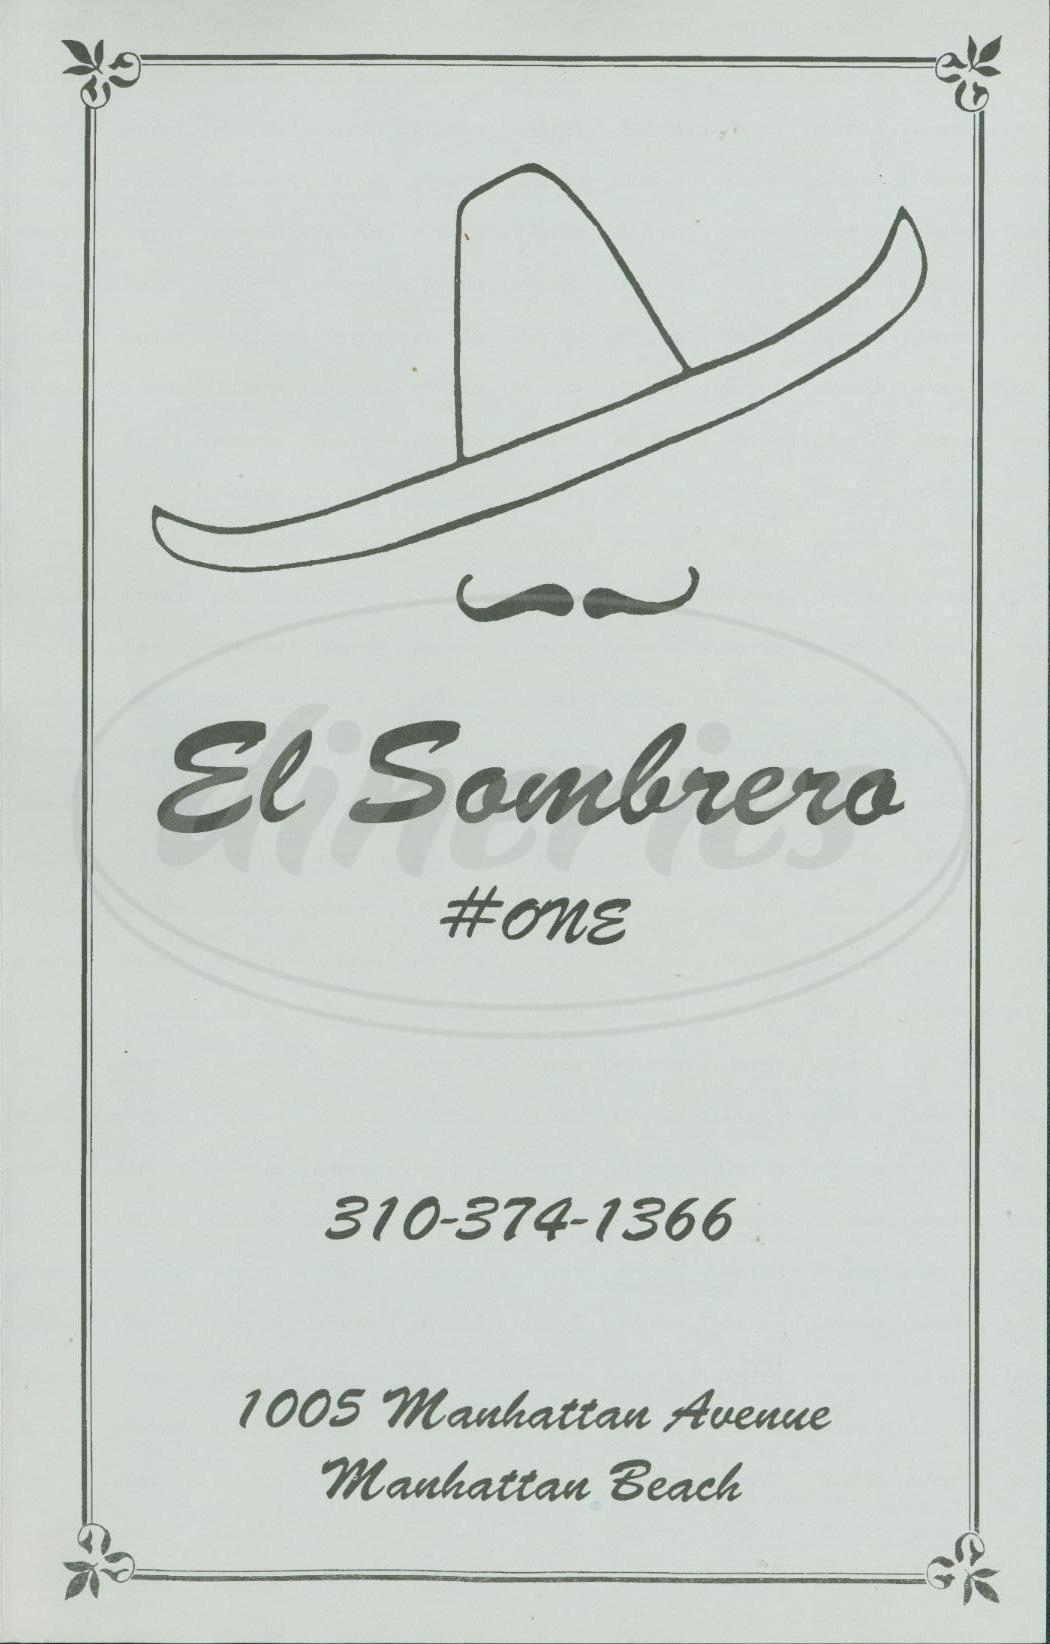 menu for El Sombrero